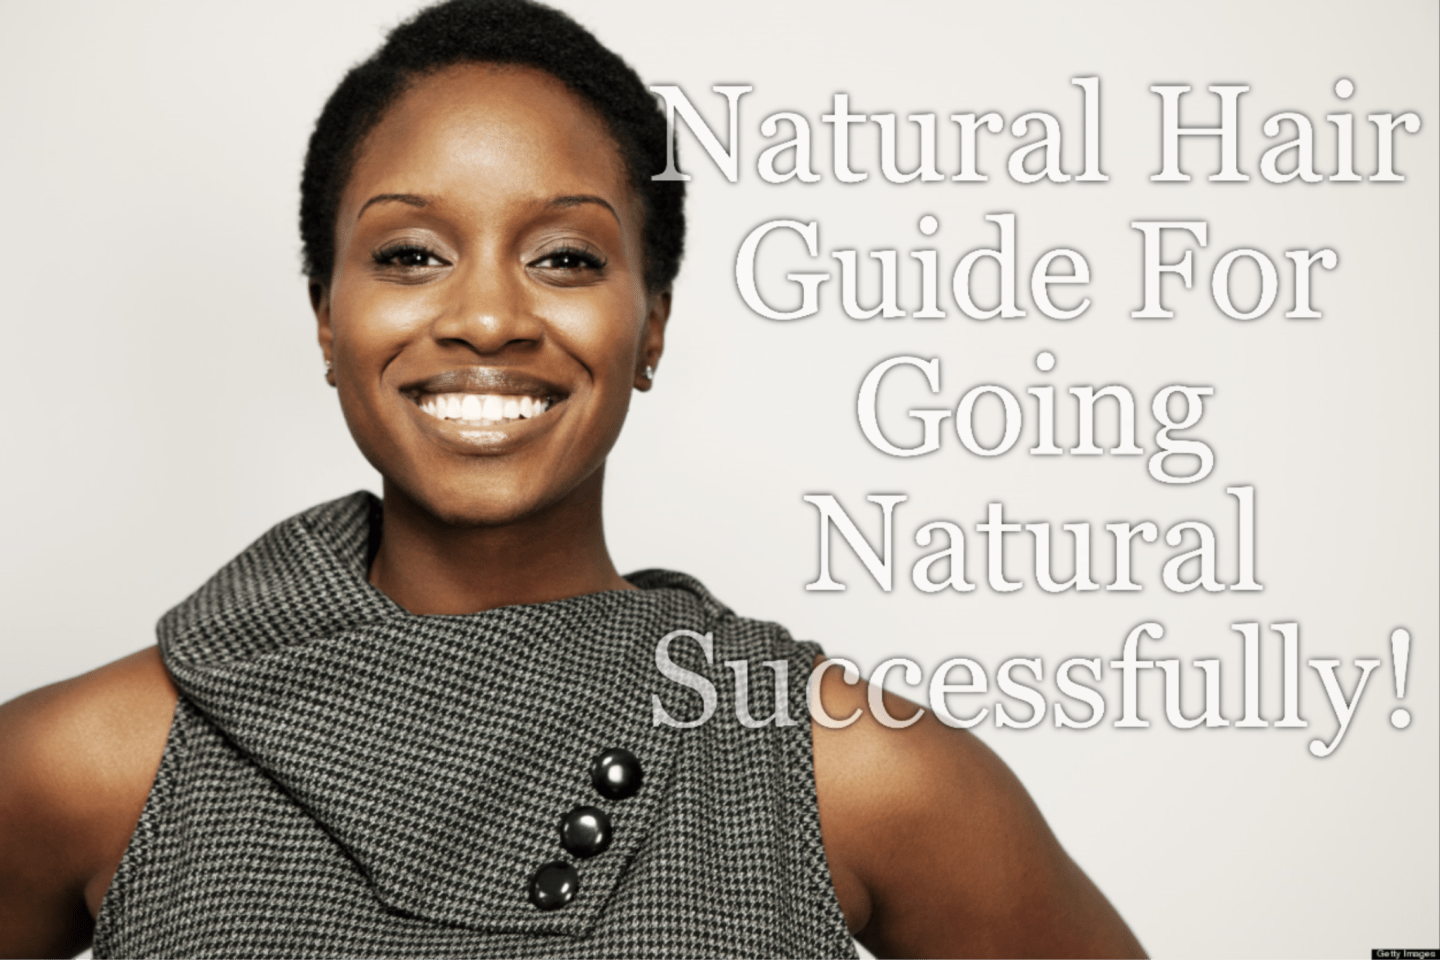 Our natural hair guide makes sure to get you on the right track for going natural successfully. From the articles on the blog and my book, you are on golden